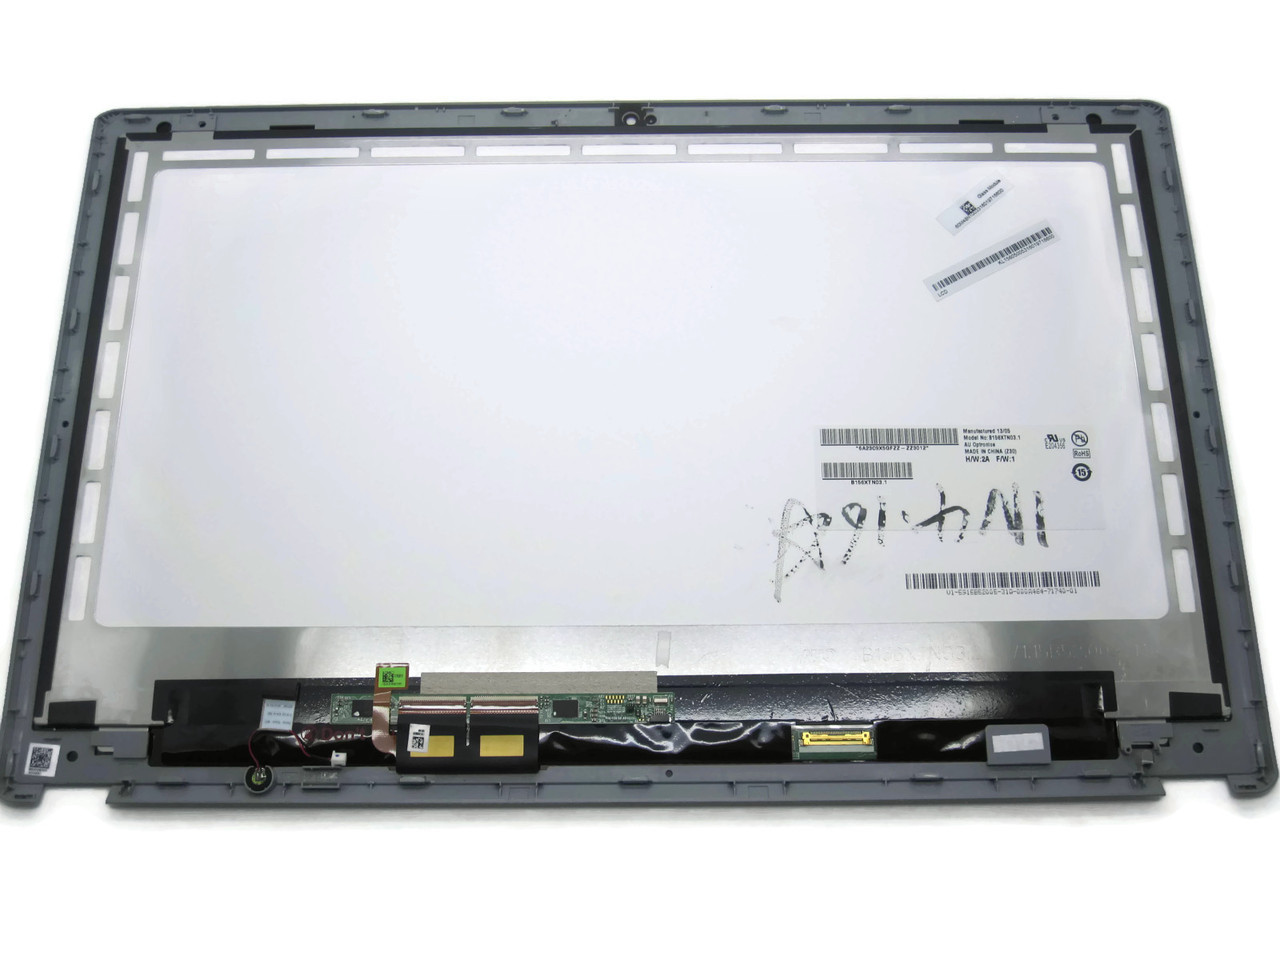 Acer Aspire V5-552 Broadcom WLAN Driver Windows